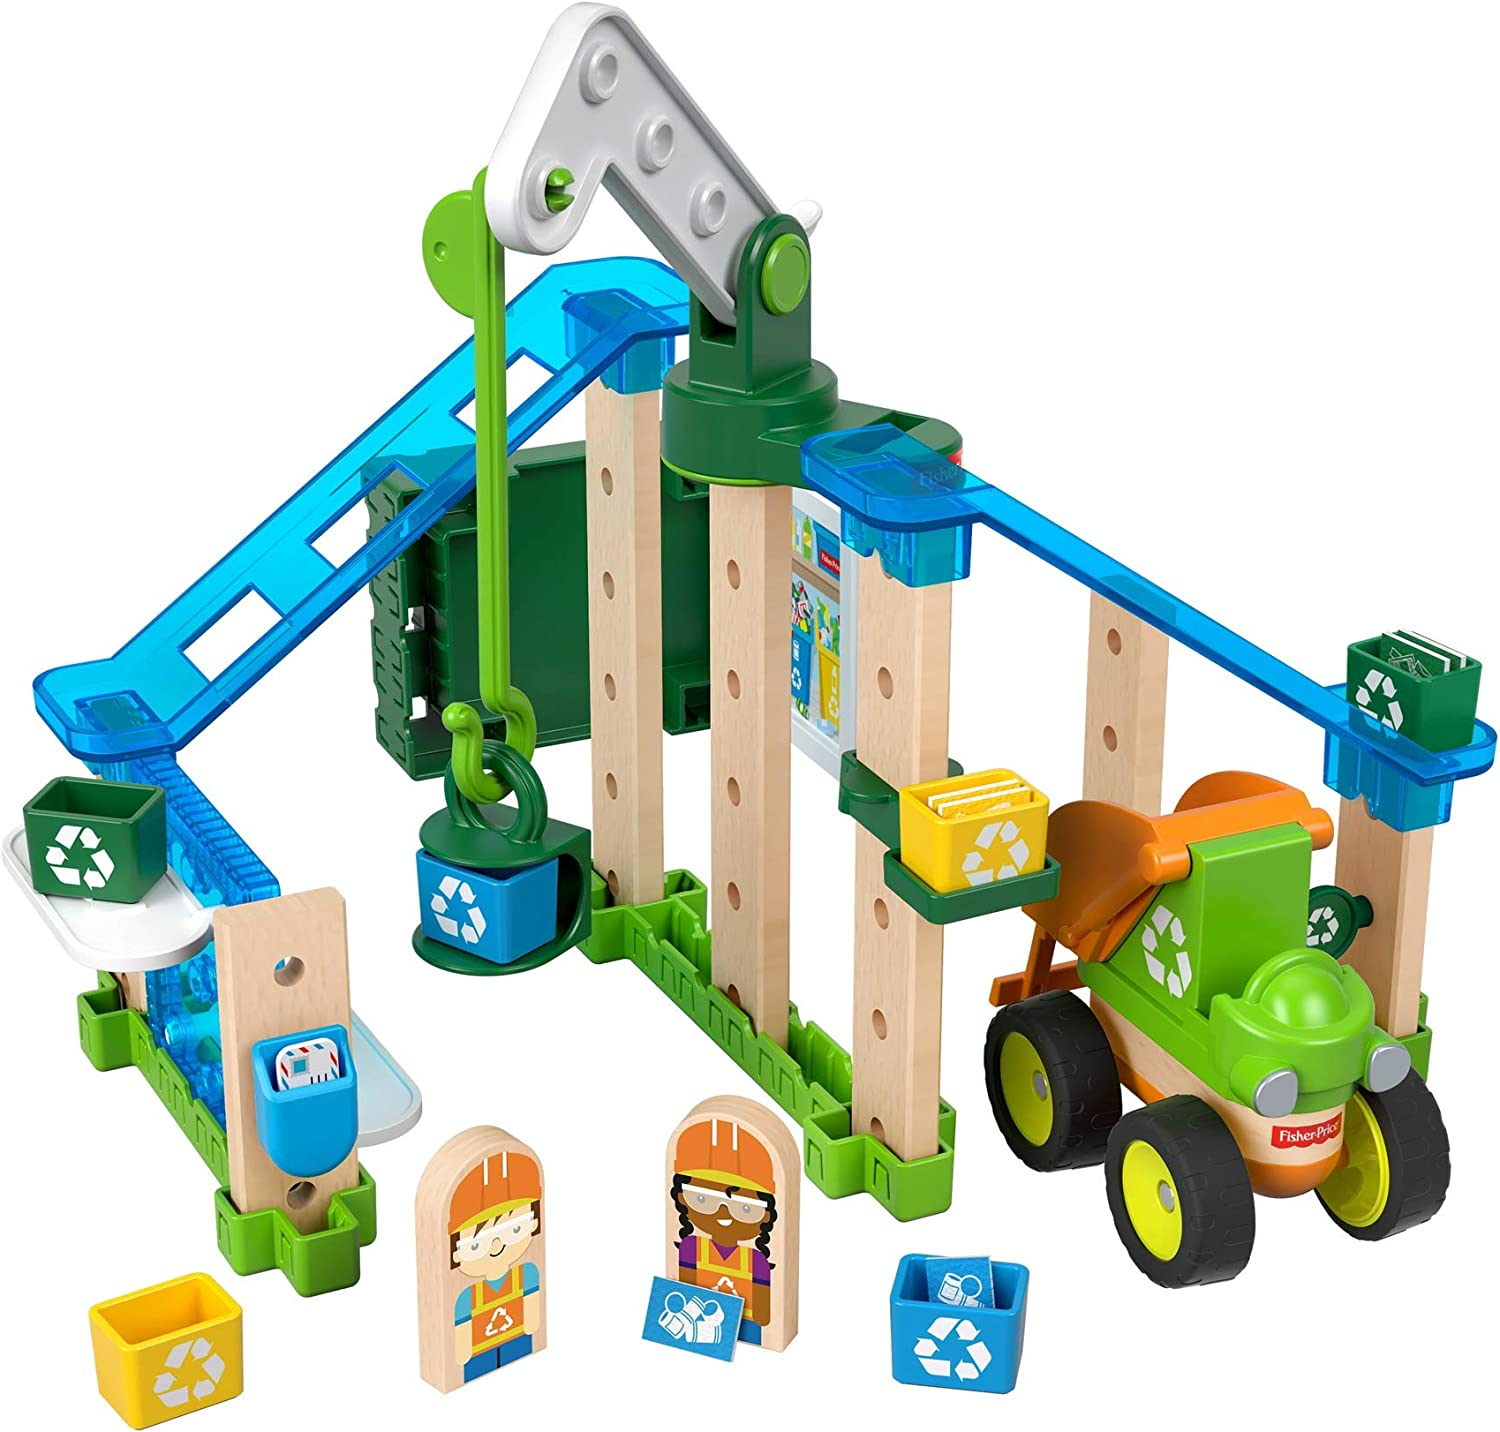 Fisher-Price Wonder Makers Design System Lift & Sort Recycling Center - 35+ Piece Building and Wooden Track Play Set for Ages 3 Years & Up